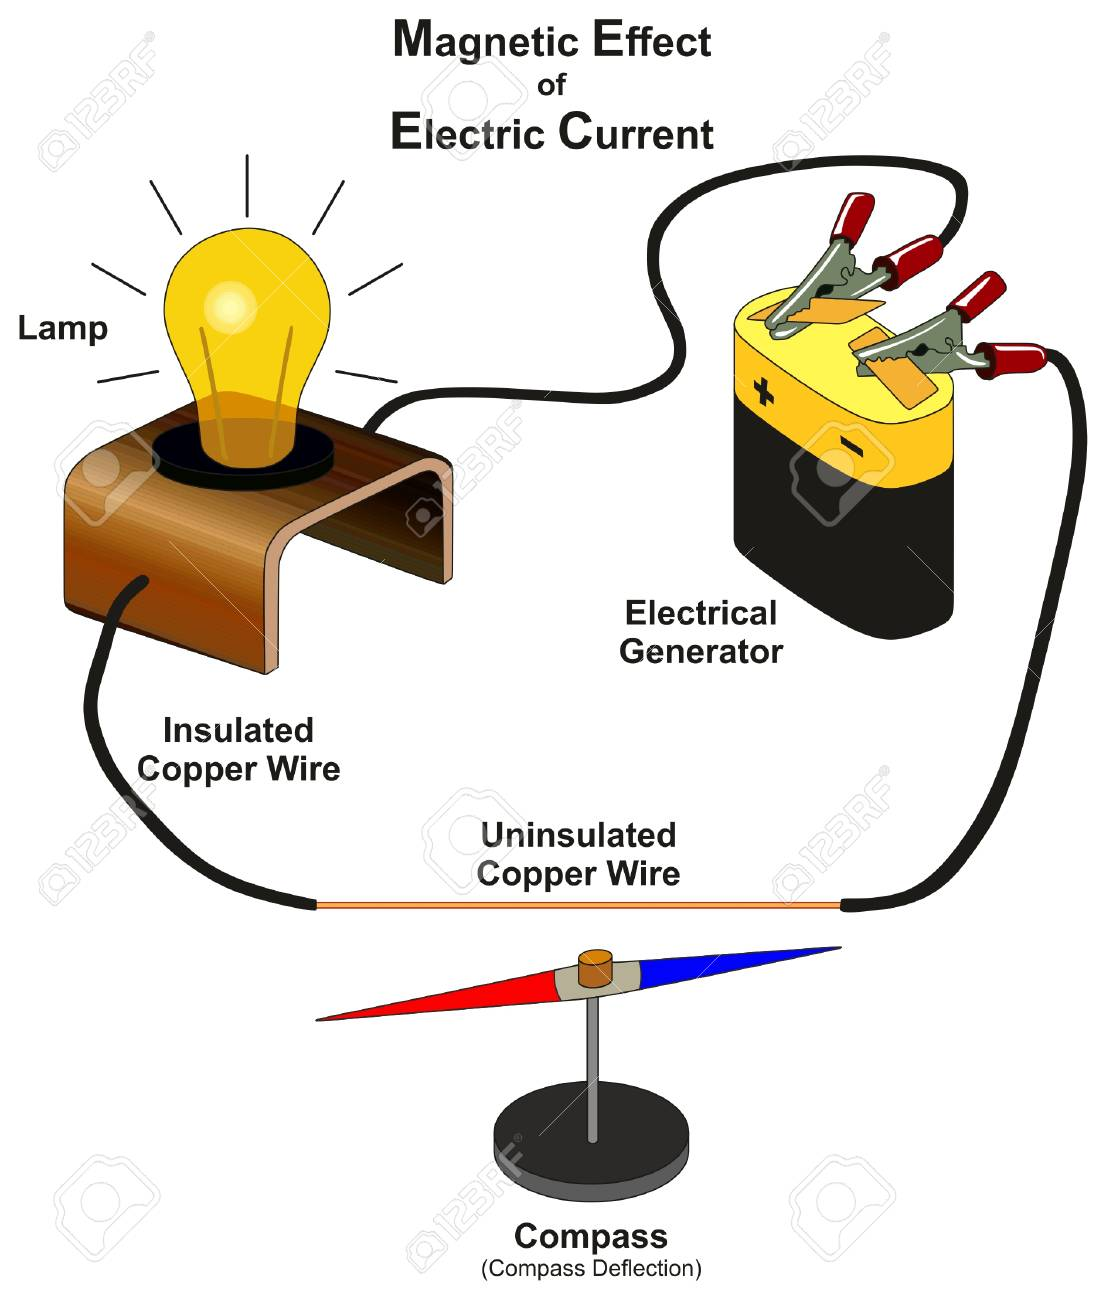 hight resolution of magnetic effect of electric current infographic diagram showing lab experiment by connecting electrical generator with lamp